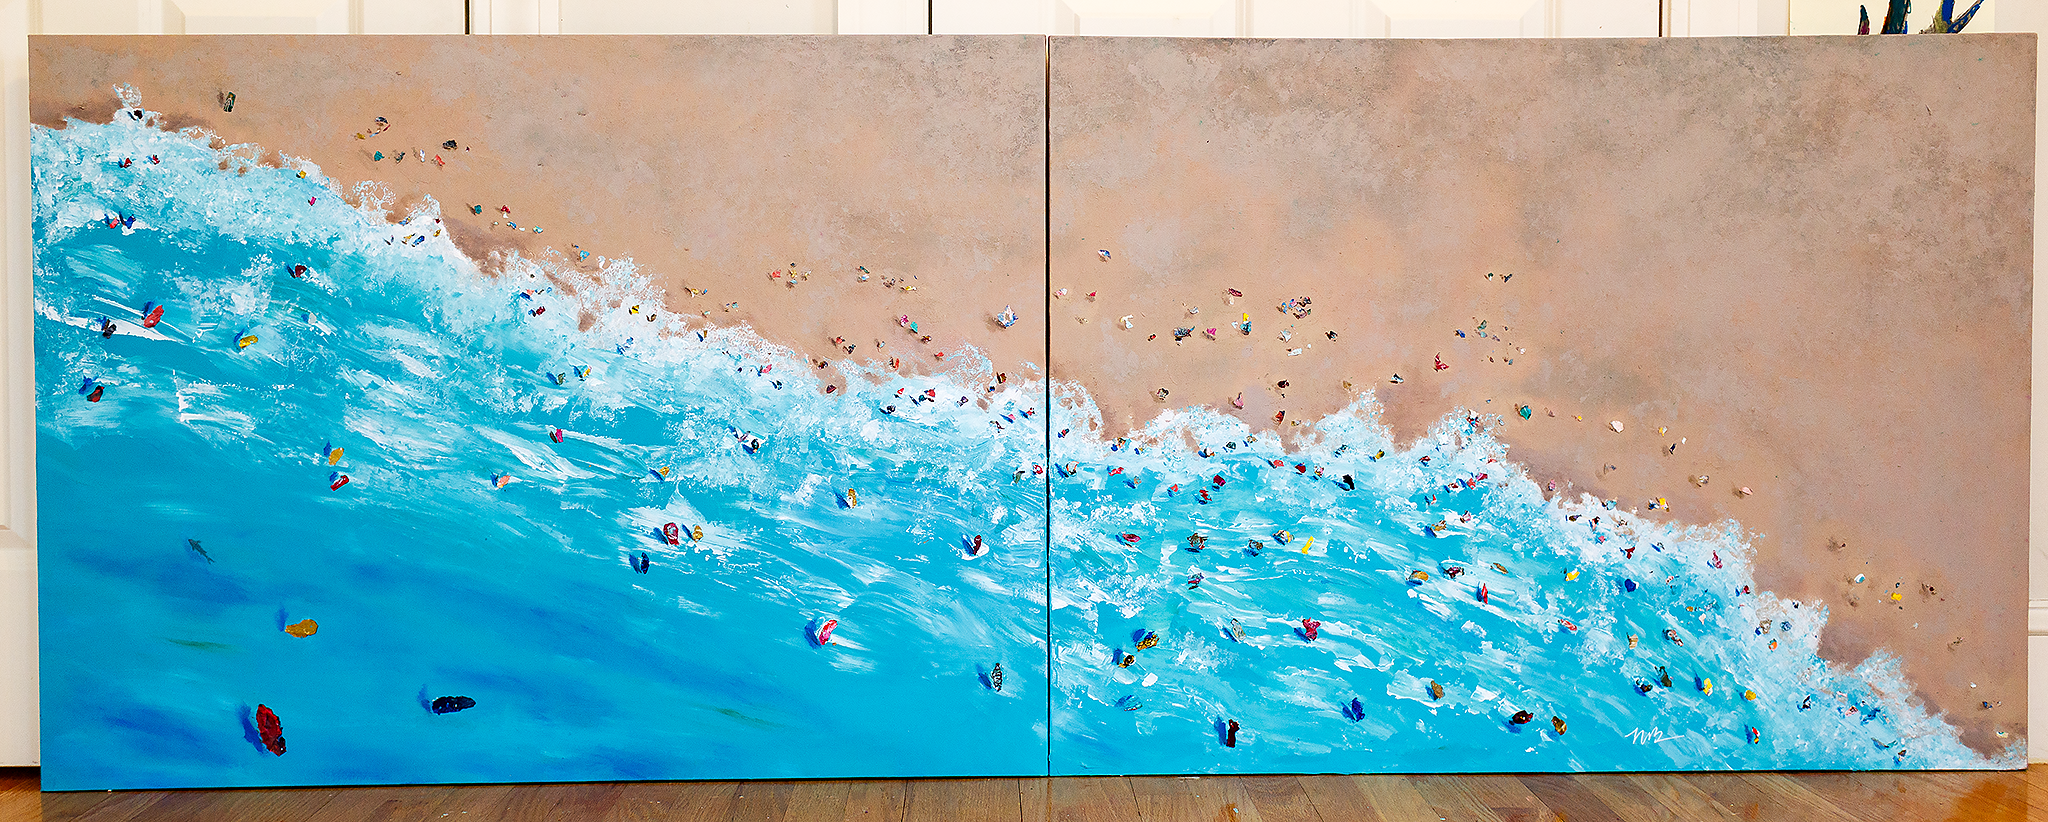 aerial painting of seascape on canvas